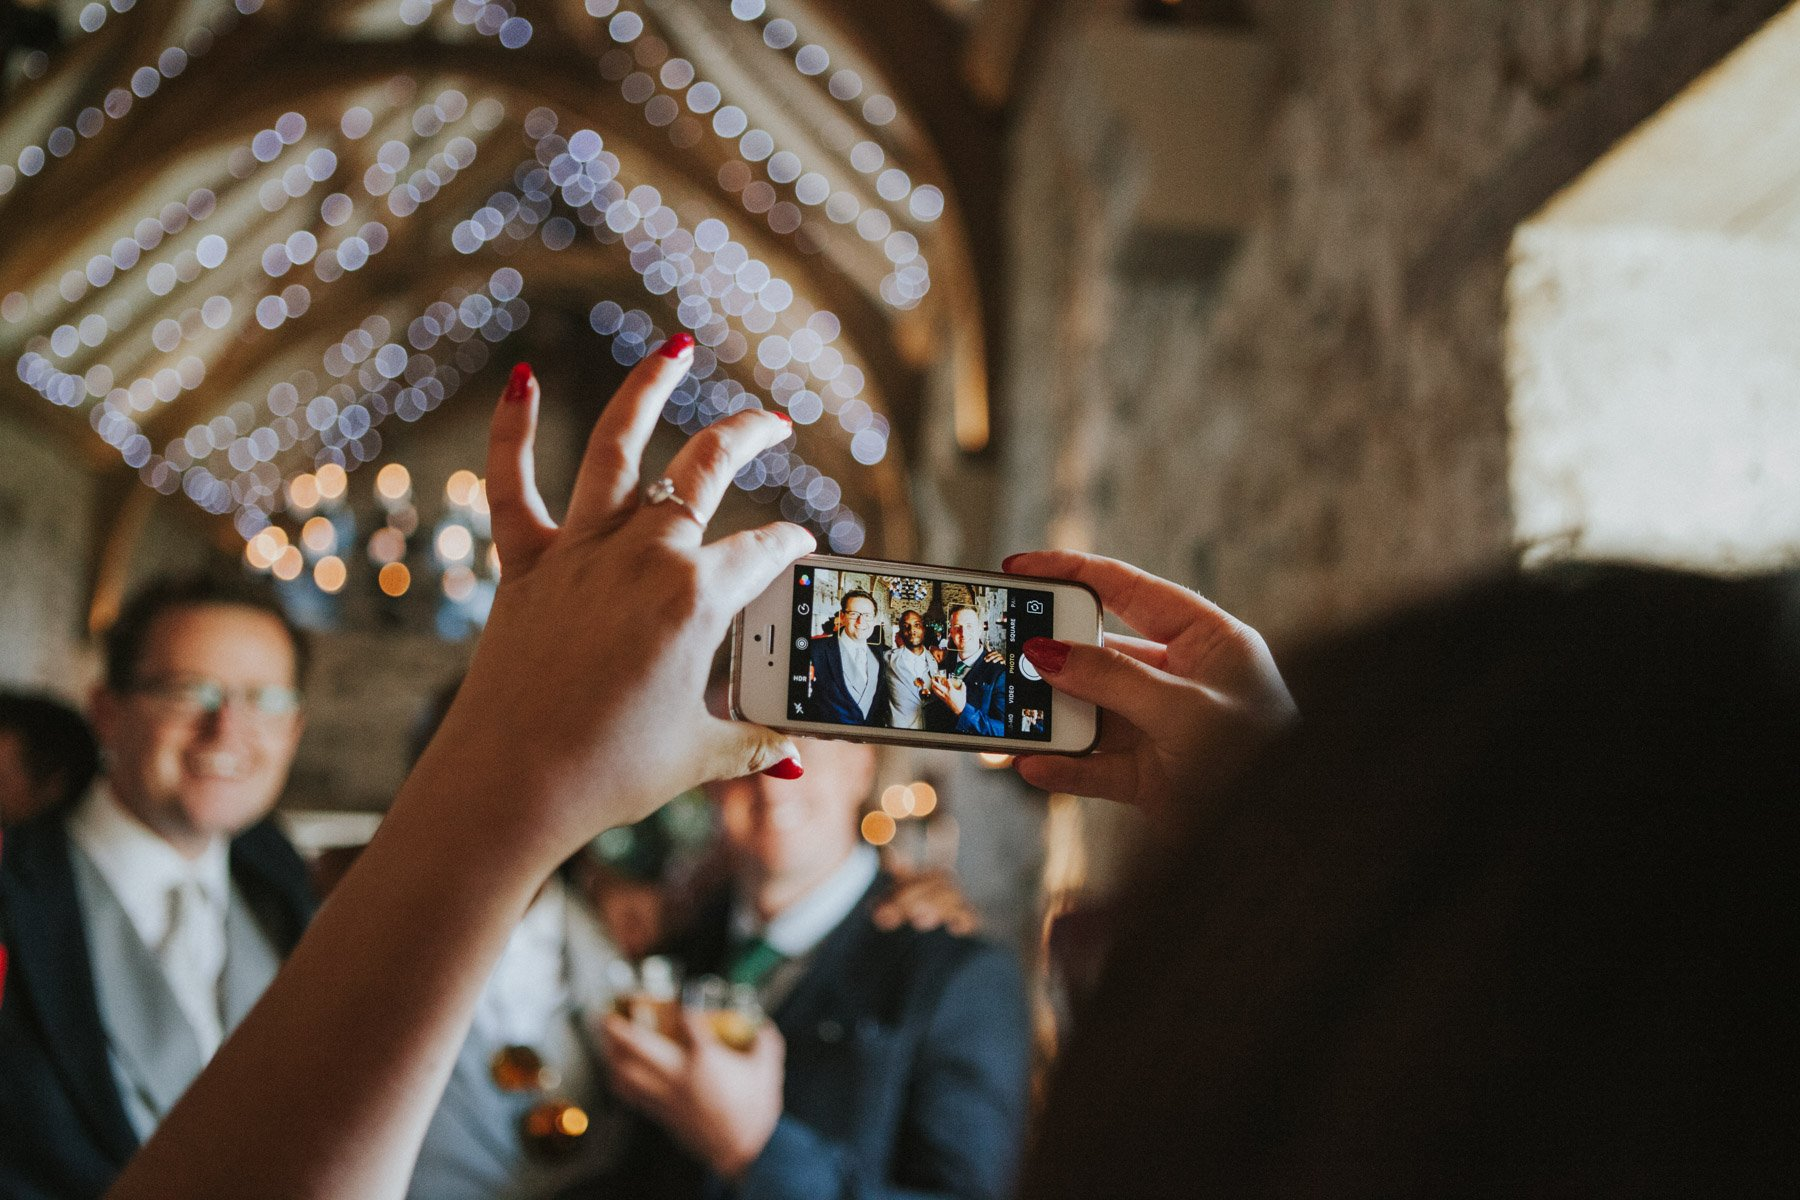 Healey Barn Wedding - Guest taking a photo